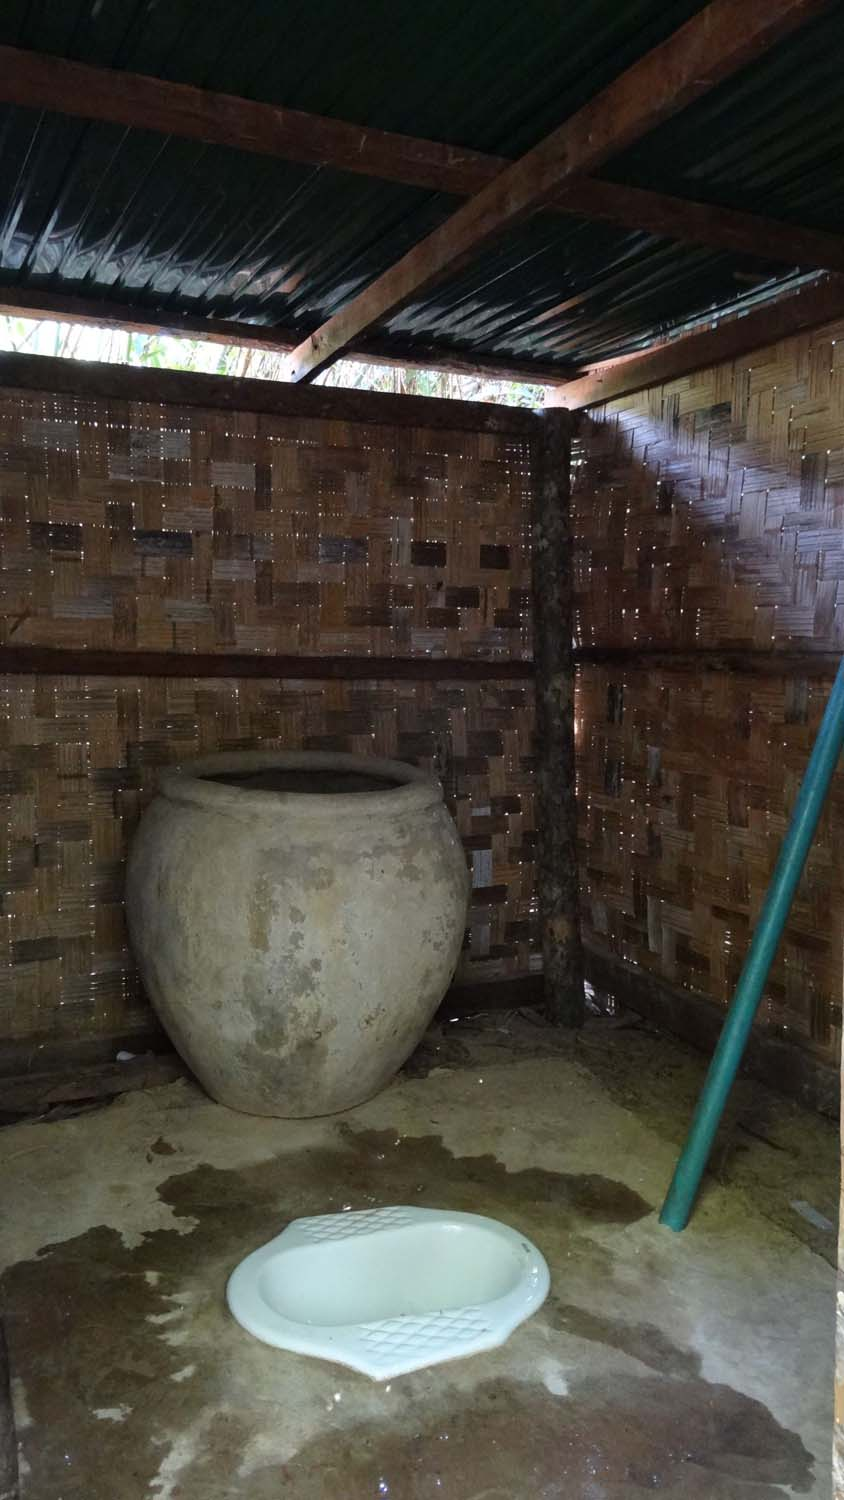 random toilet, the big stone pot has the water in it to flush